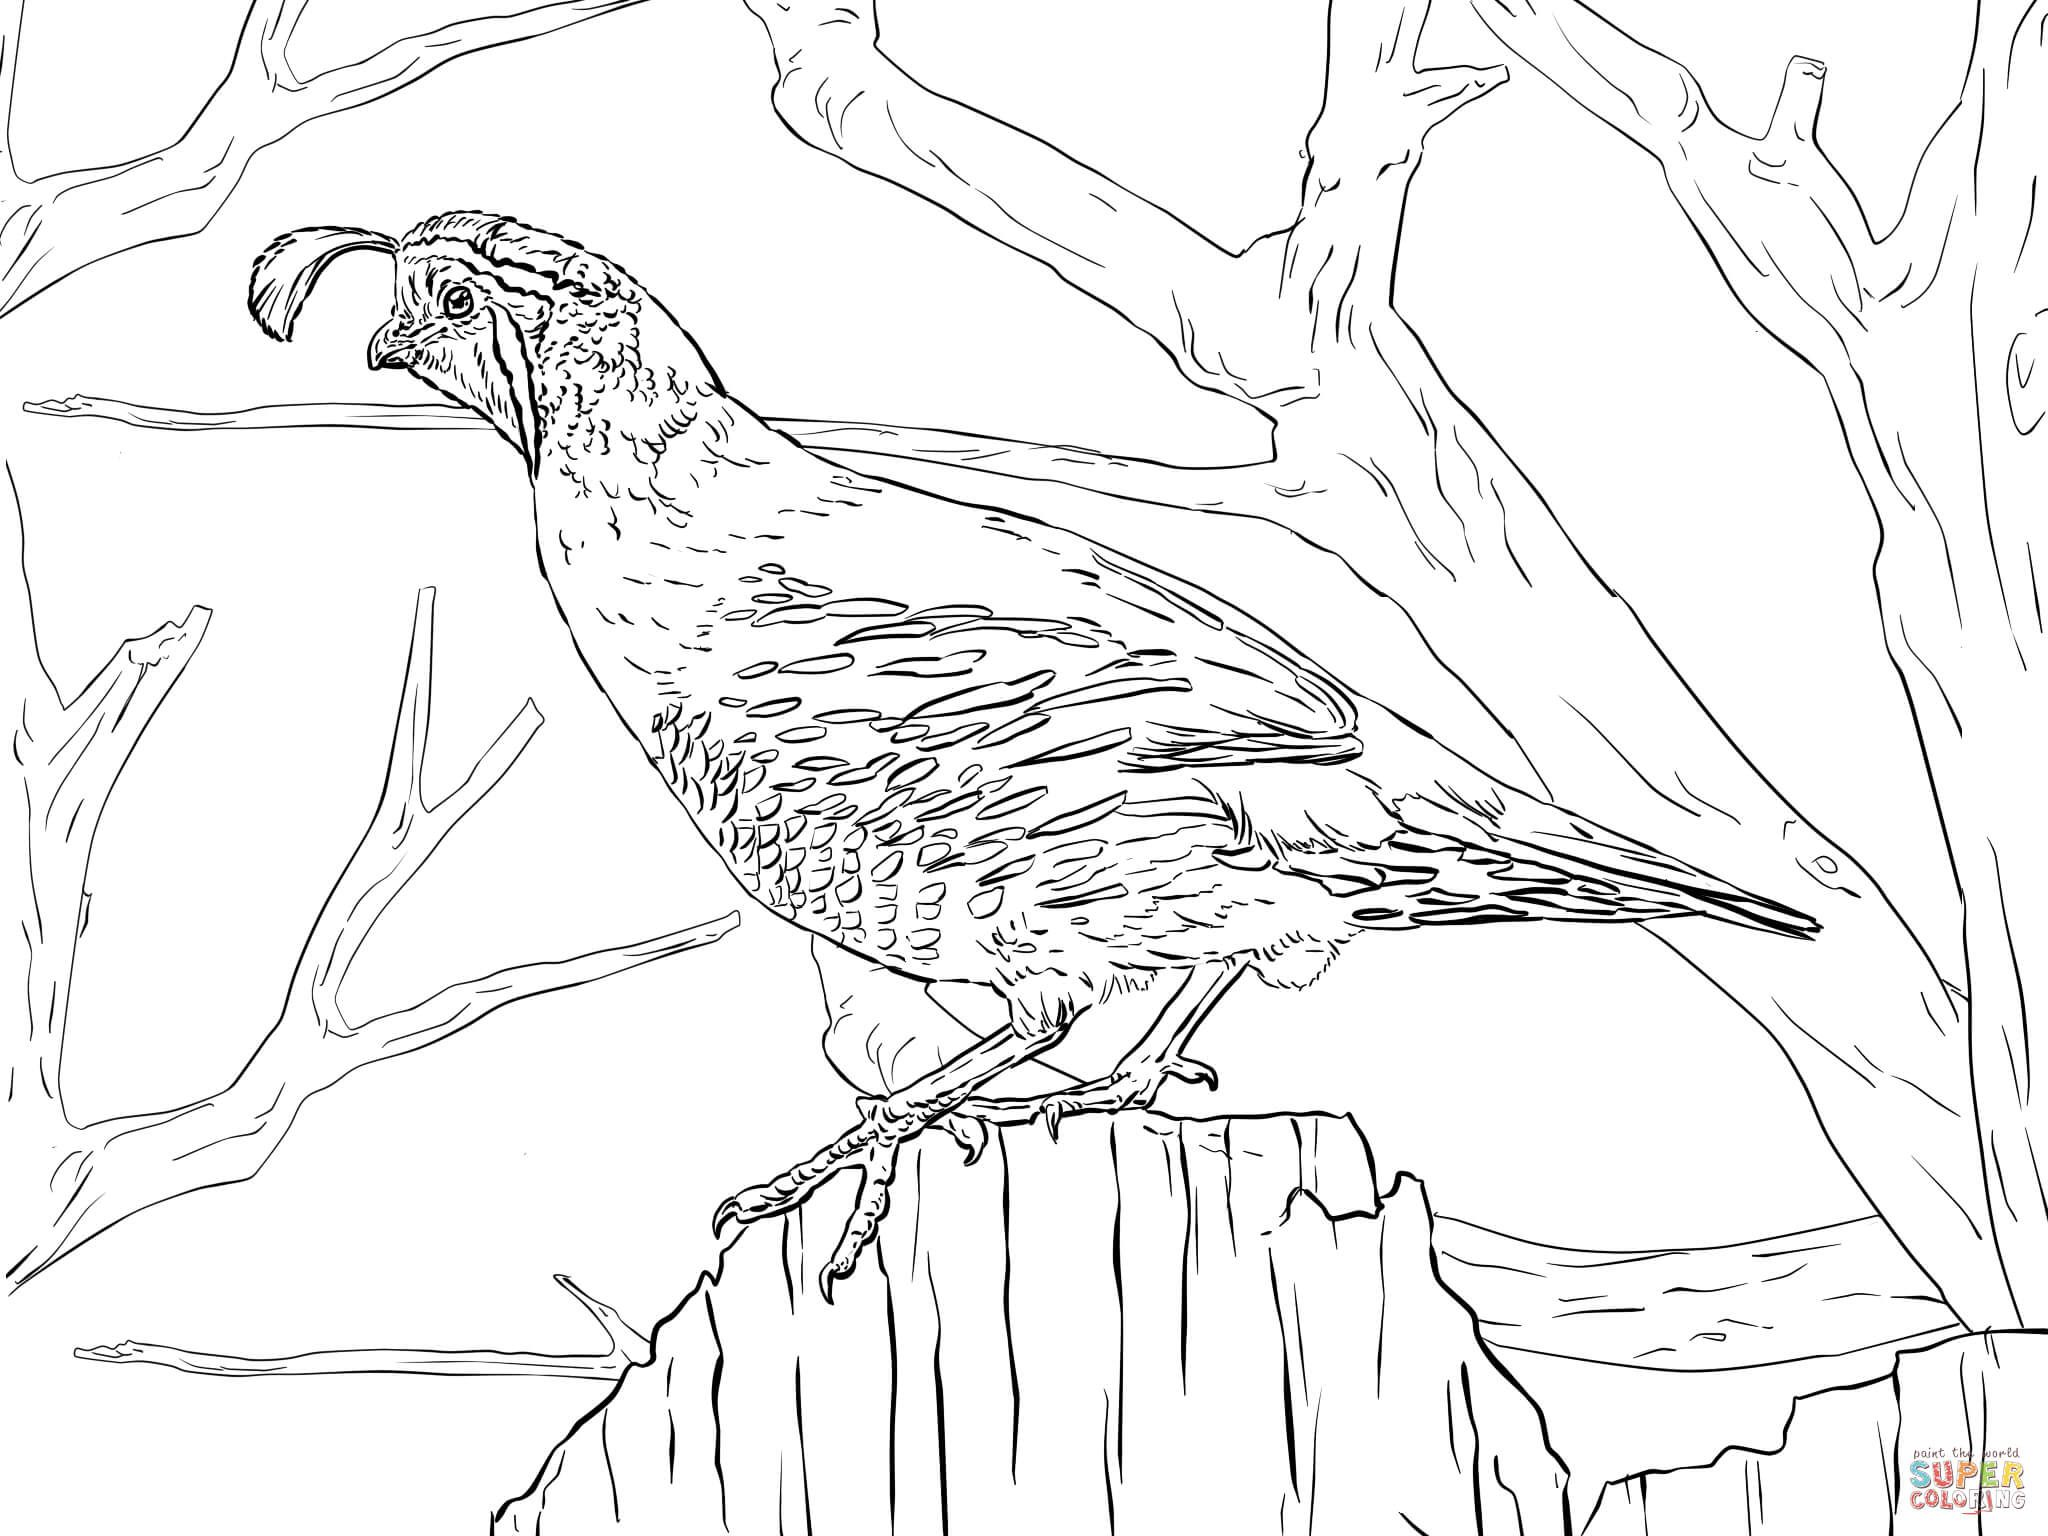 Realistic California Quail Coloring Page Free Printable Coloring Turtle Coloring Pages Bird Coloring Pages Cars Coloring Pages